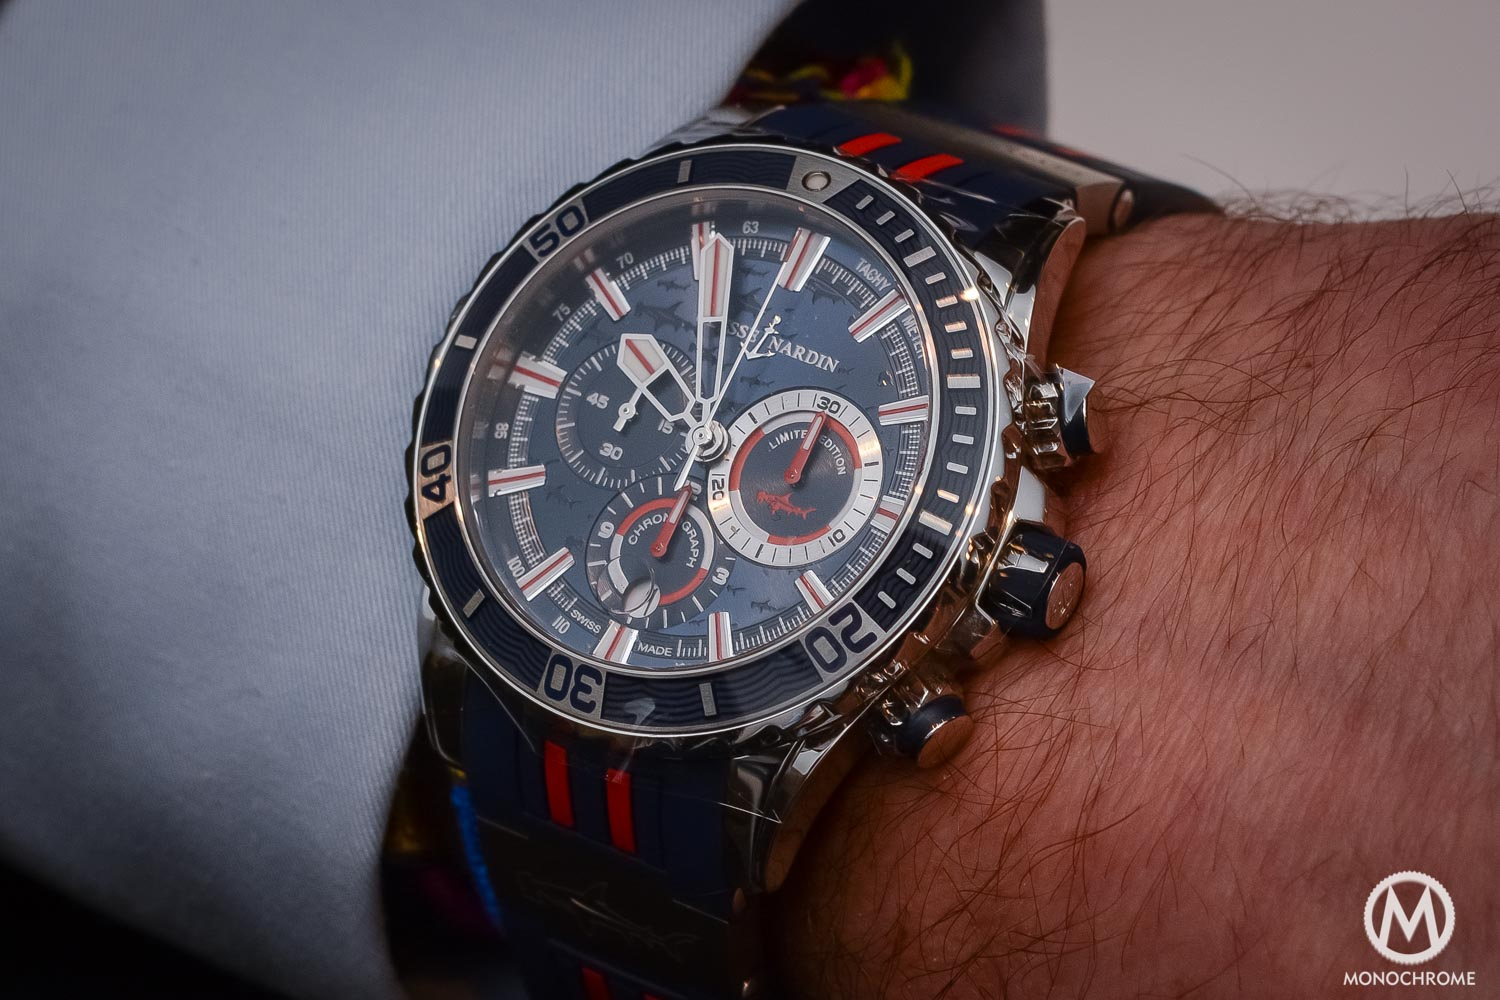 Introducing - Ulysse Nardin Diver Chronograph Hammerhead Shark (live photos)